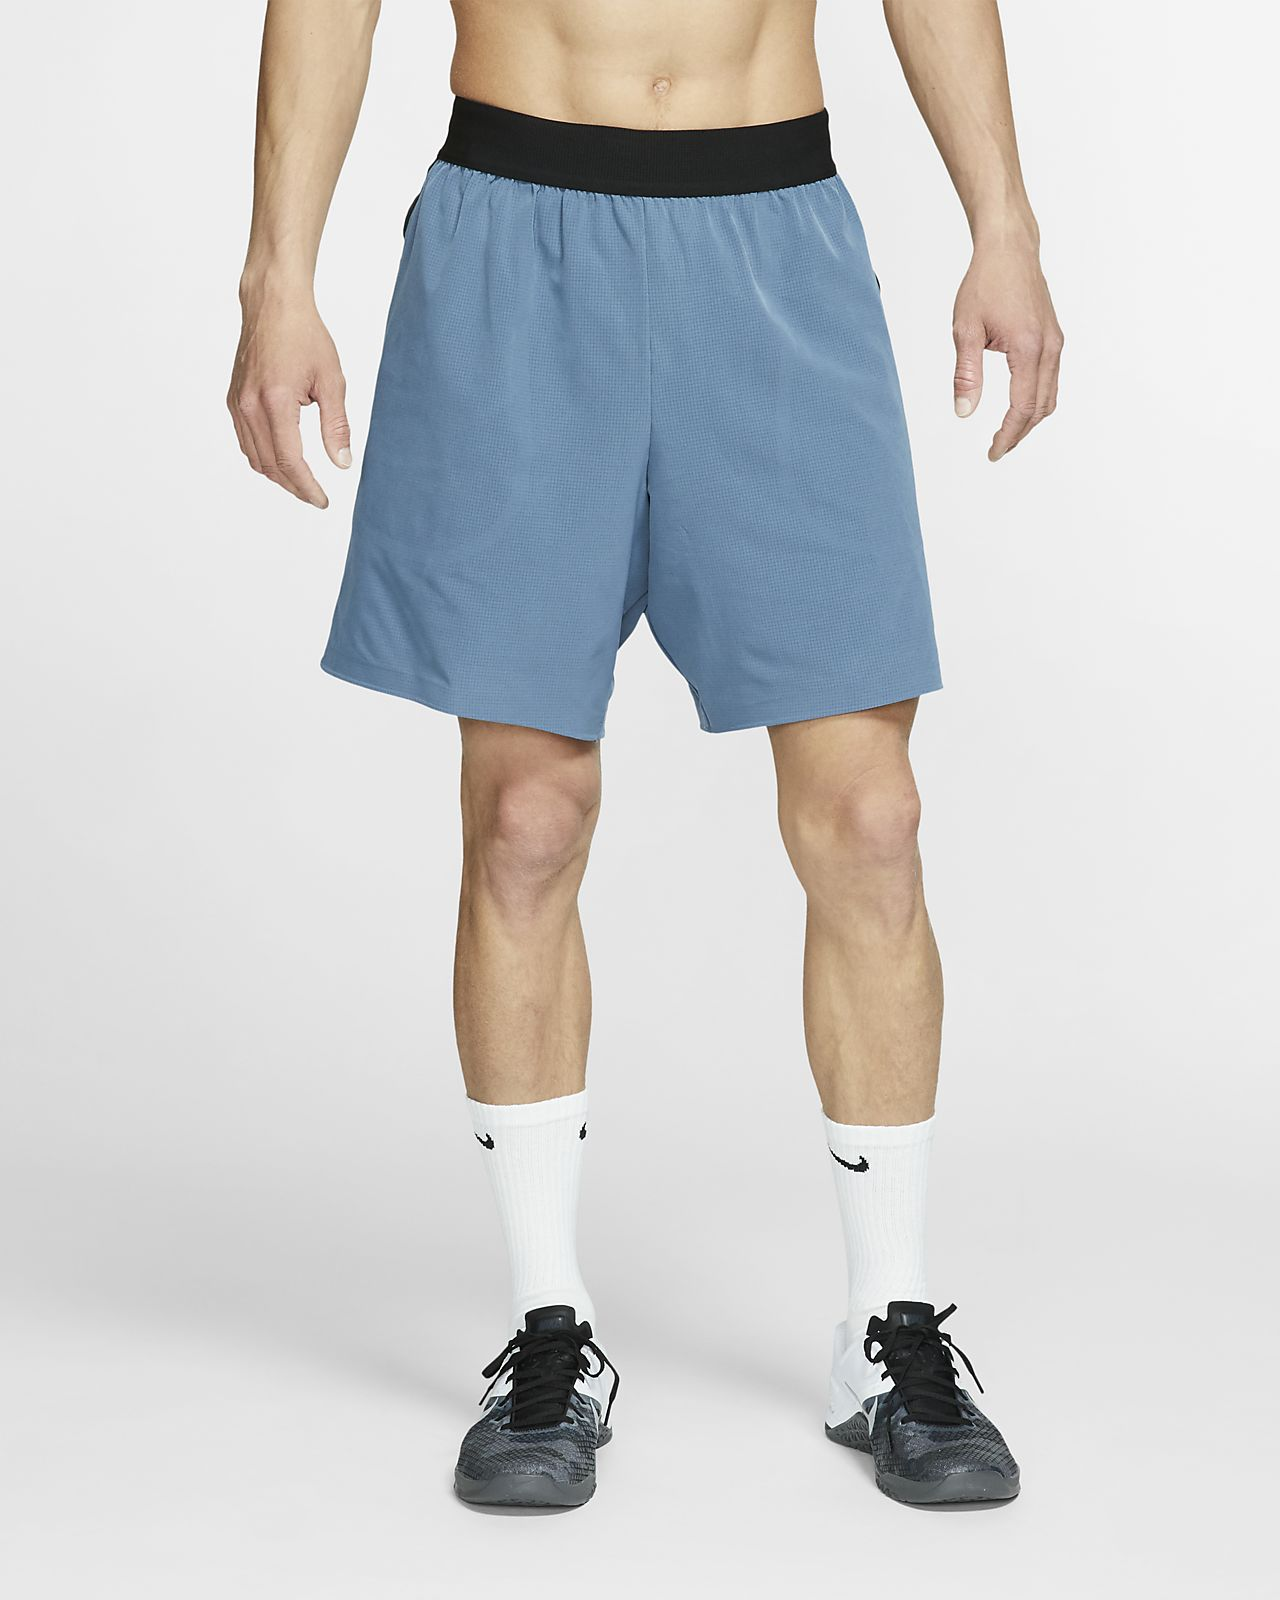 Nike Flex Tech Pack Men's Training Shorts